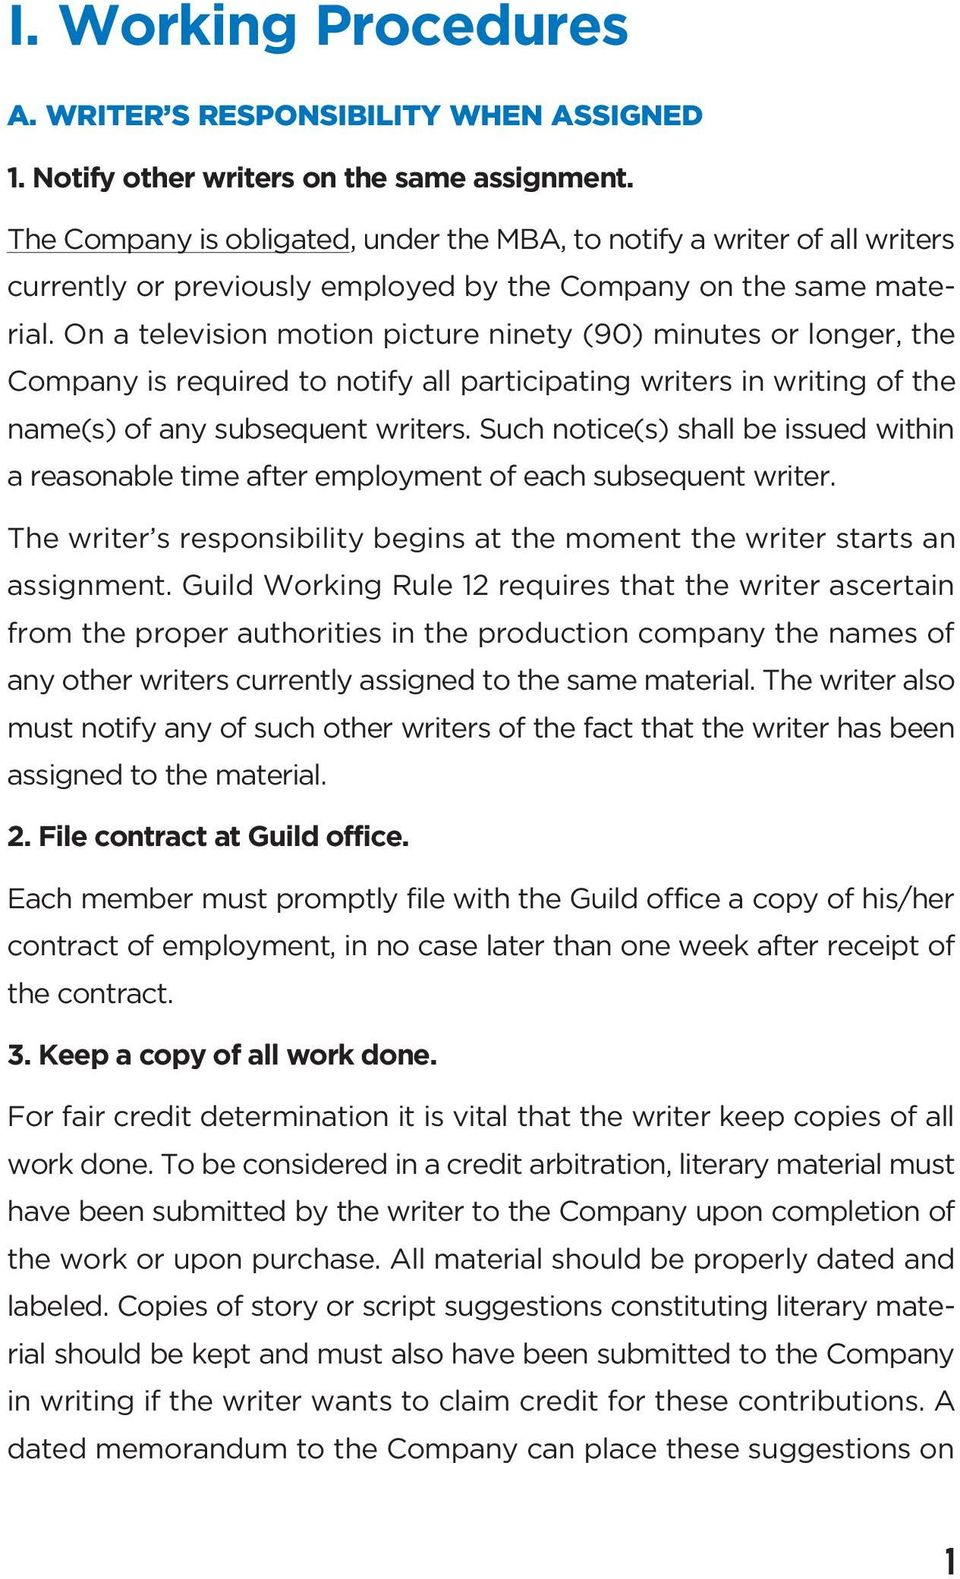 On a television motion picture ninety (90) minutes or longer, the Company is required to notify all participating writers in writing of the name(s) of any subsequent writers.